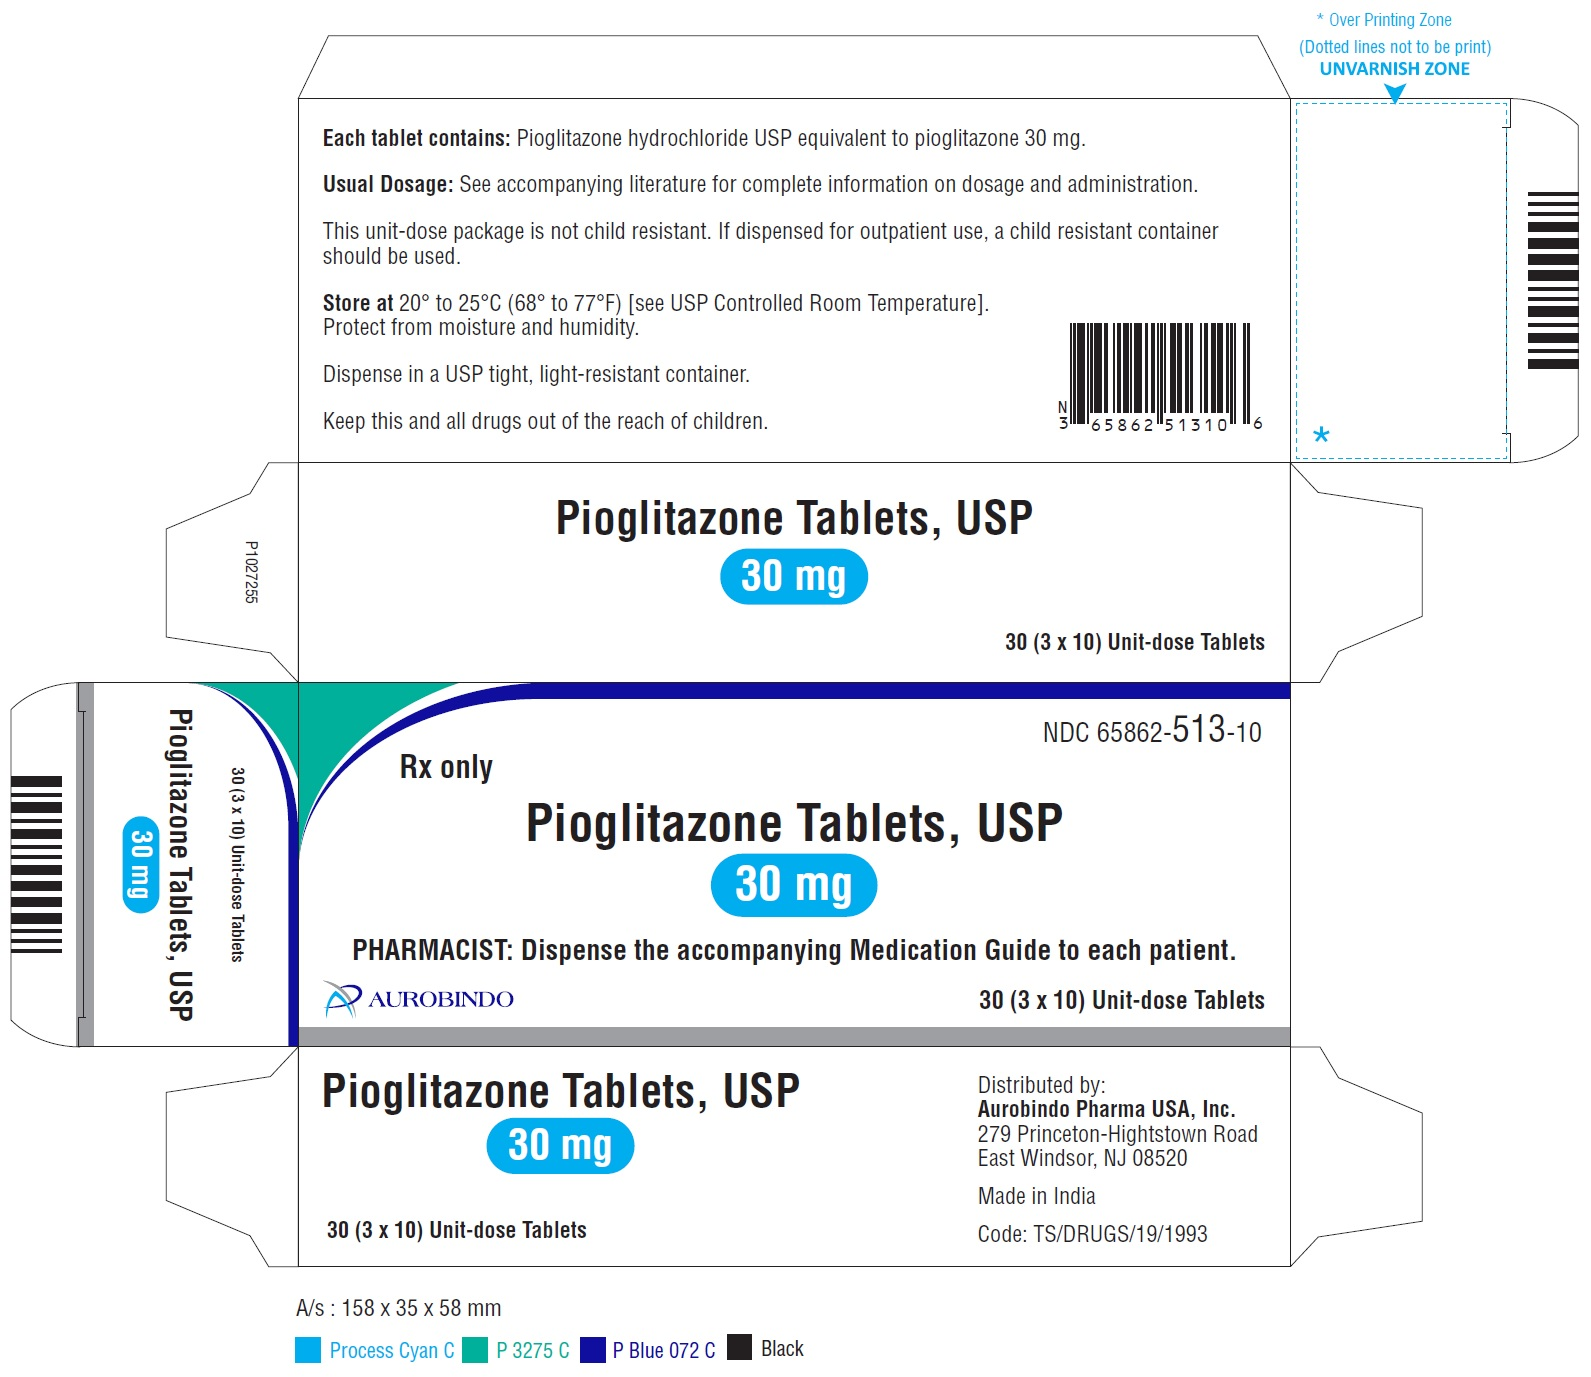 PACKAGE LABEL-PRINCIPAL DISPLAY PANEL - 30 mg Blister Carton (3 x 10 Unit-dose)